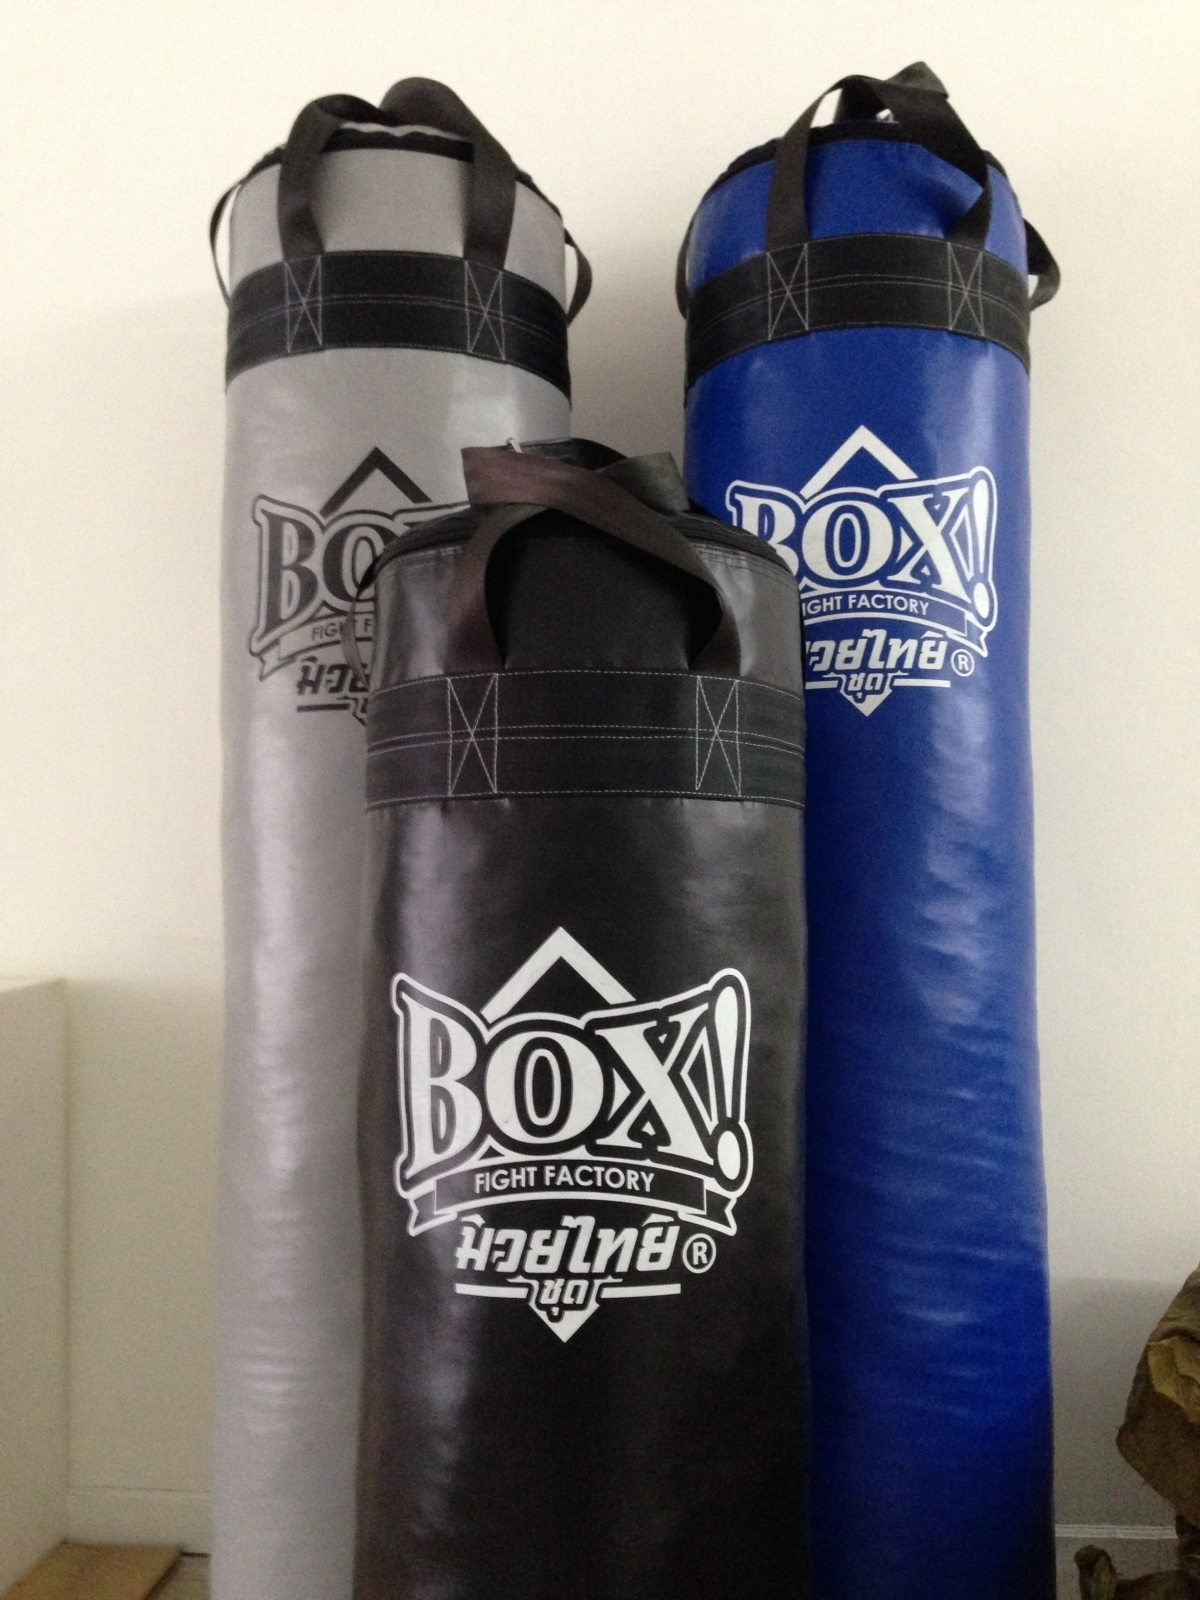 BOX!_Muay-Thai-serie_Punching-Bag.jpeg